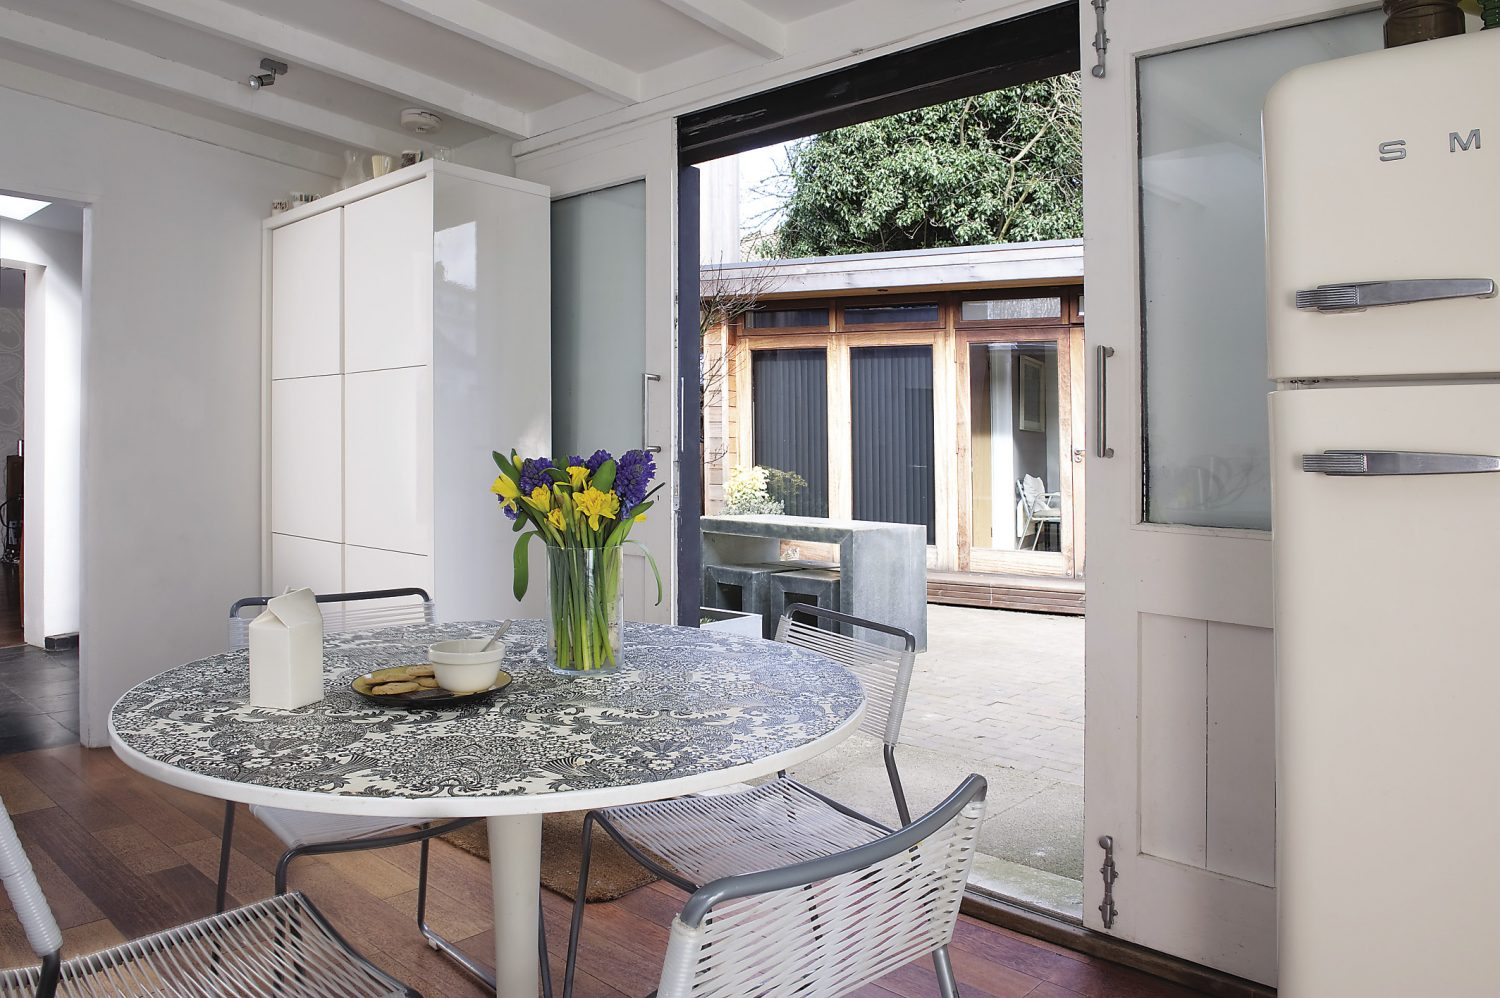 the kitchen, designed by local architect Robert George, leads out into the u-shaped central courtyard